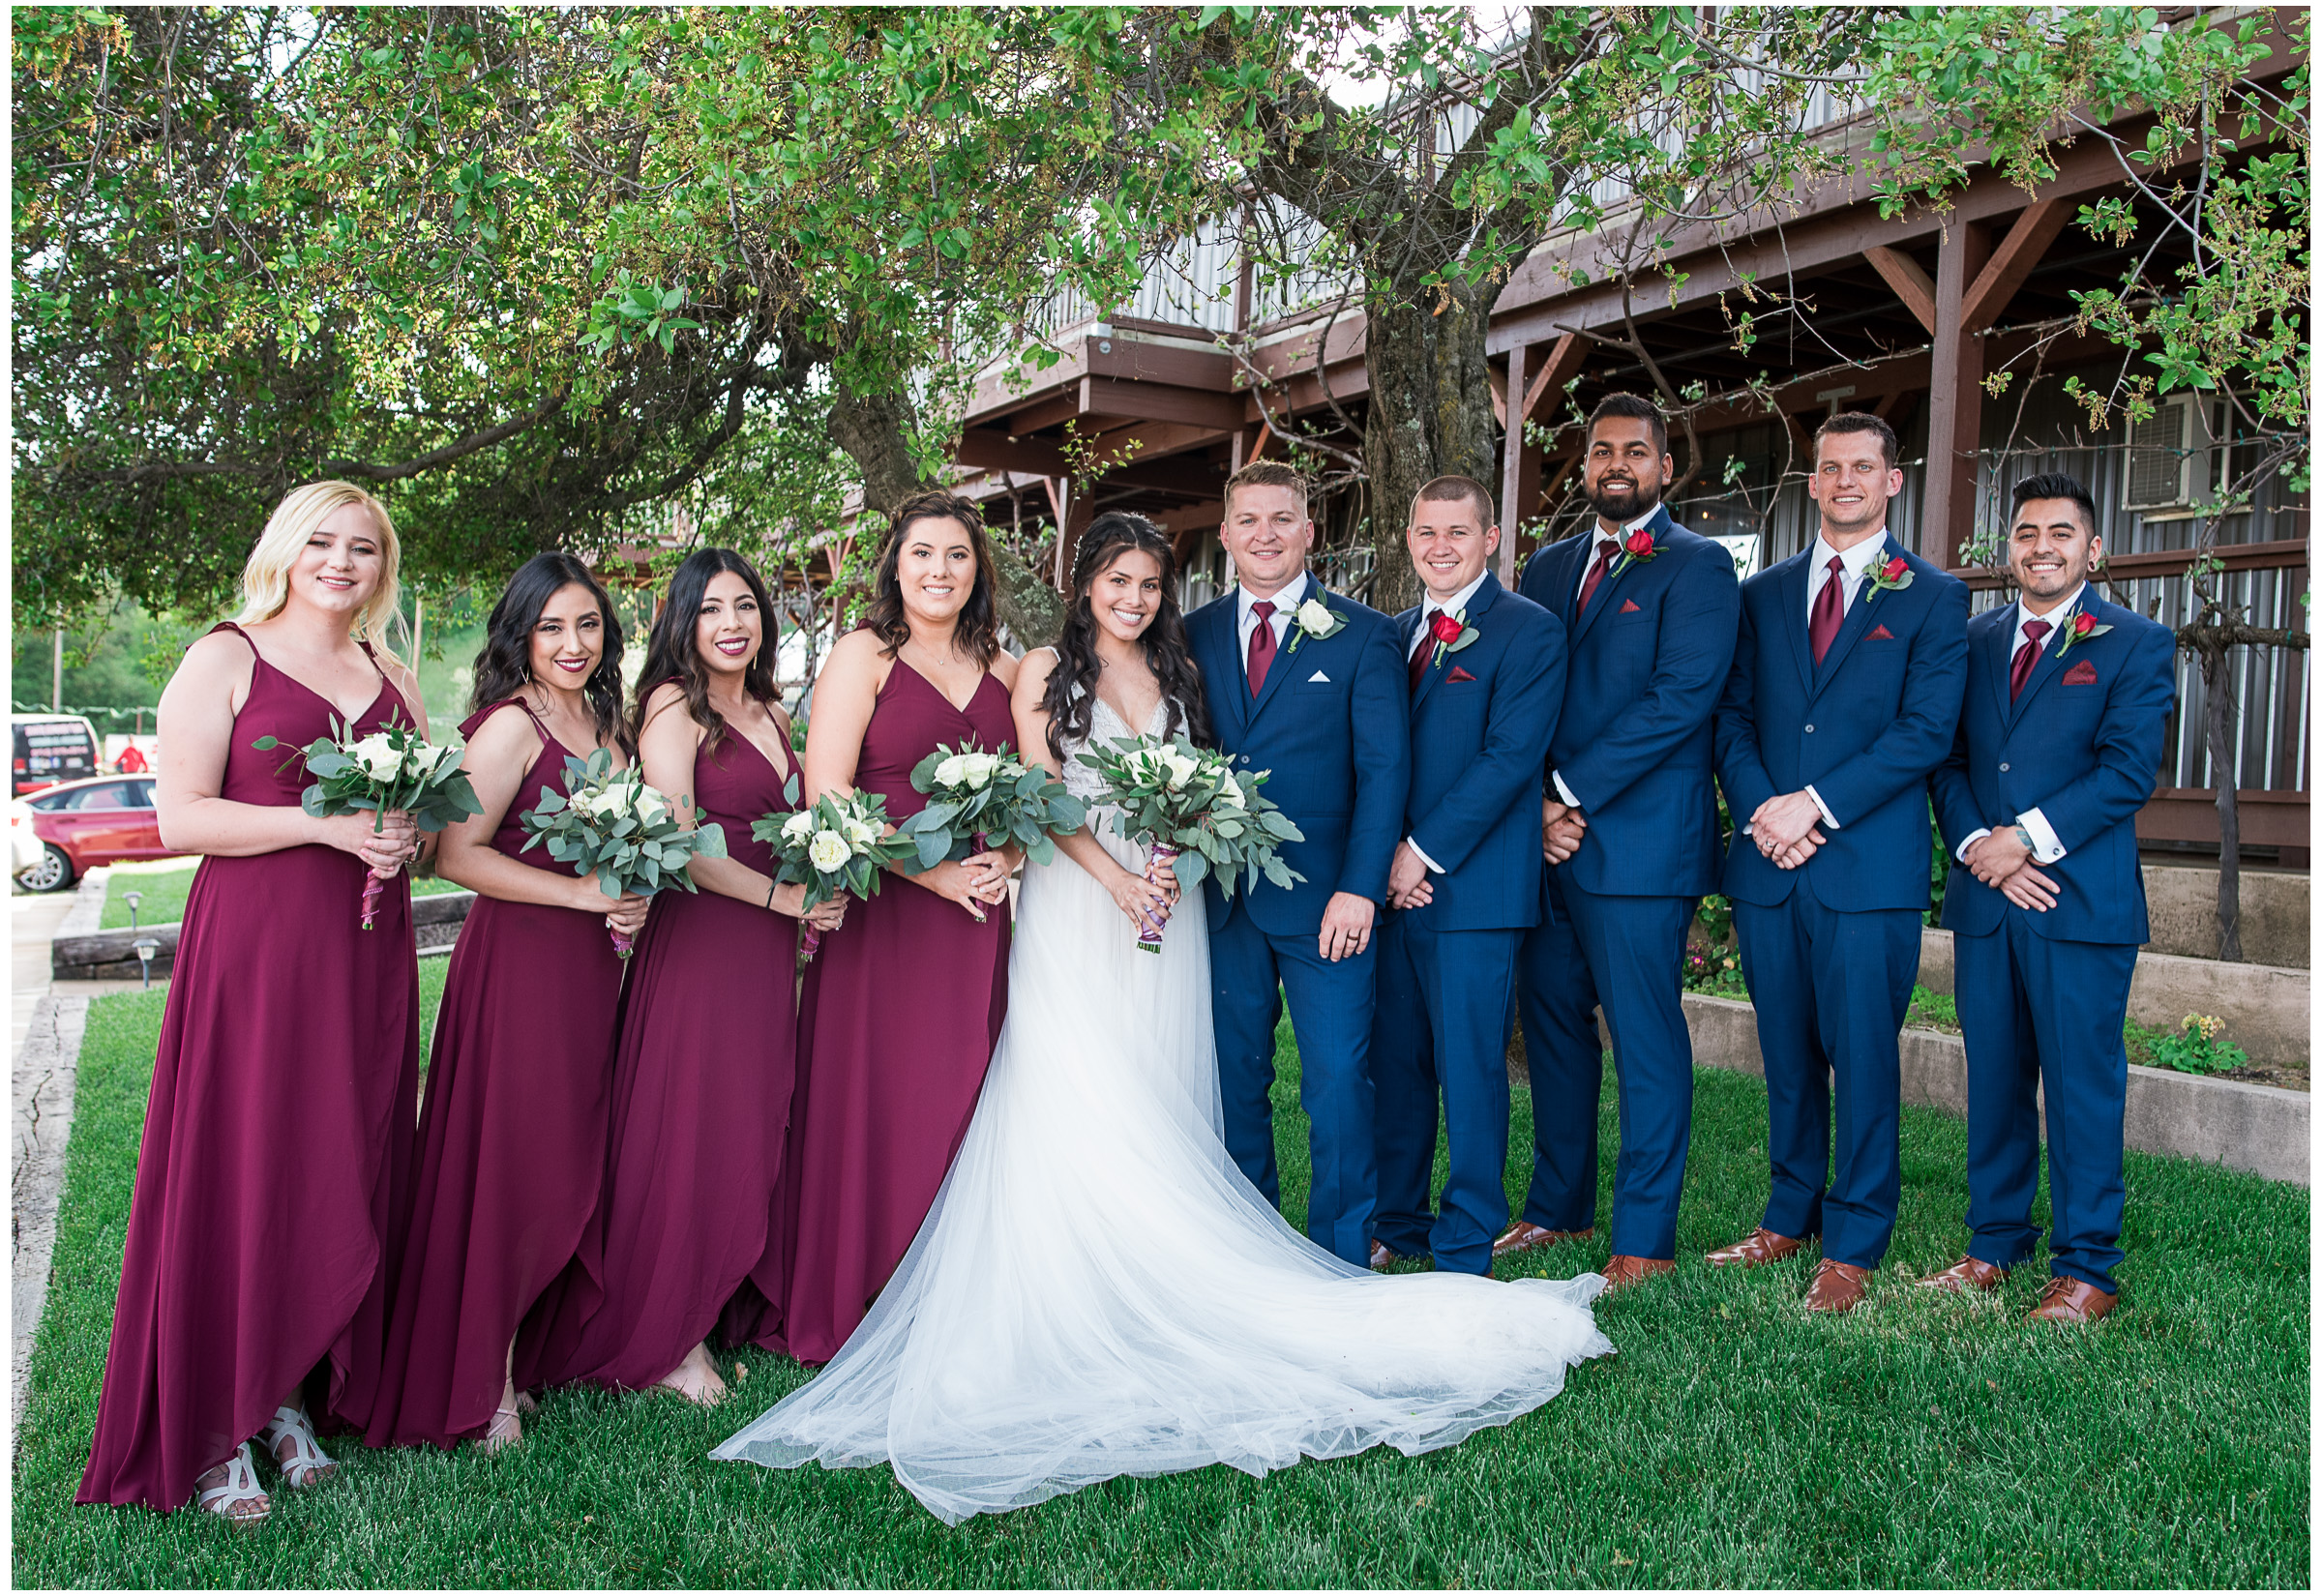 Lincoln Wedding - Sacramento Photographer - Rock Hill Winery - Justin Wilcox Photography - 11.jpg